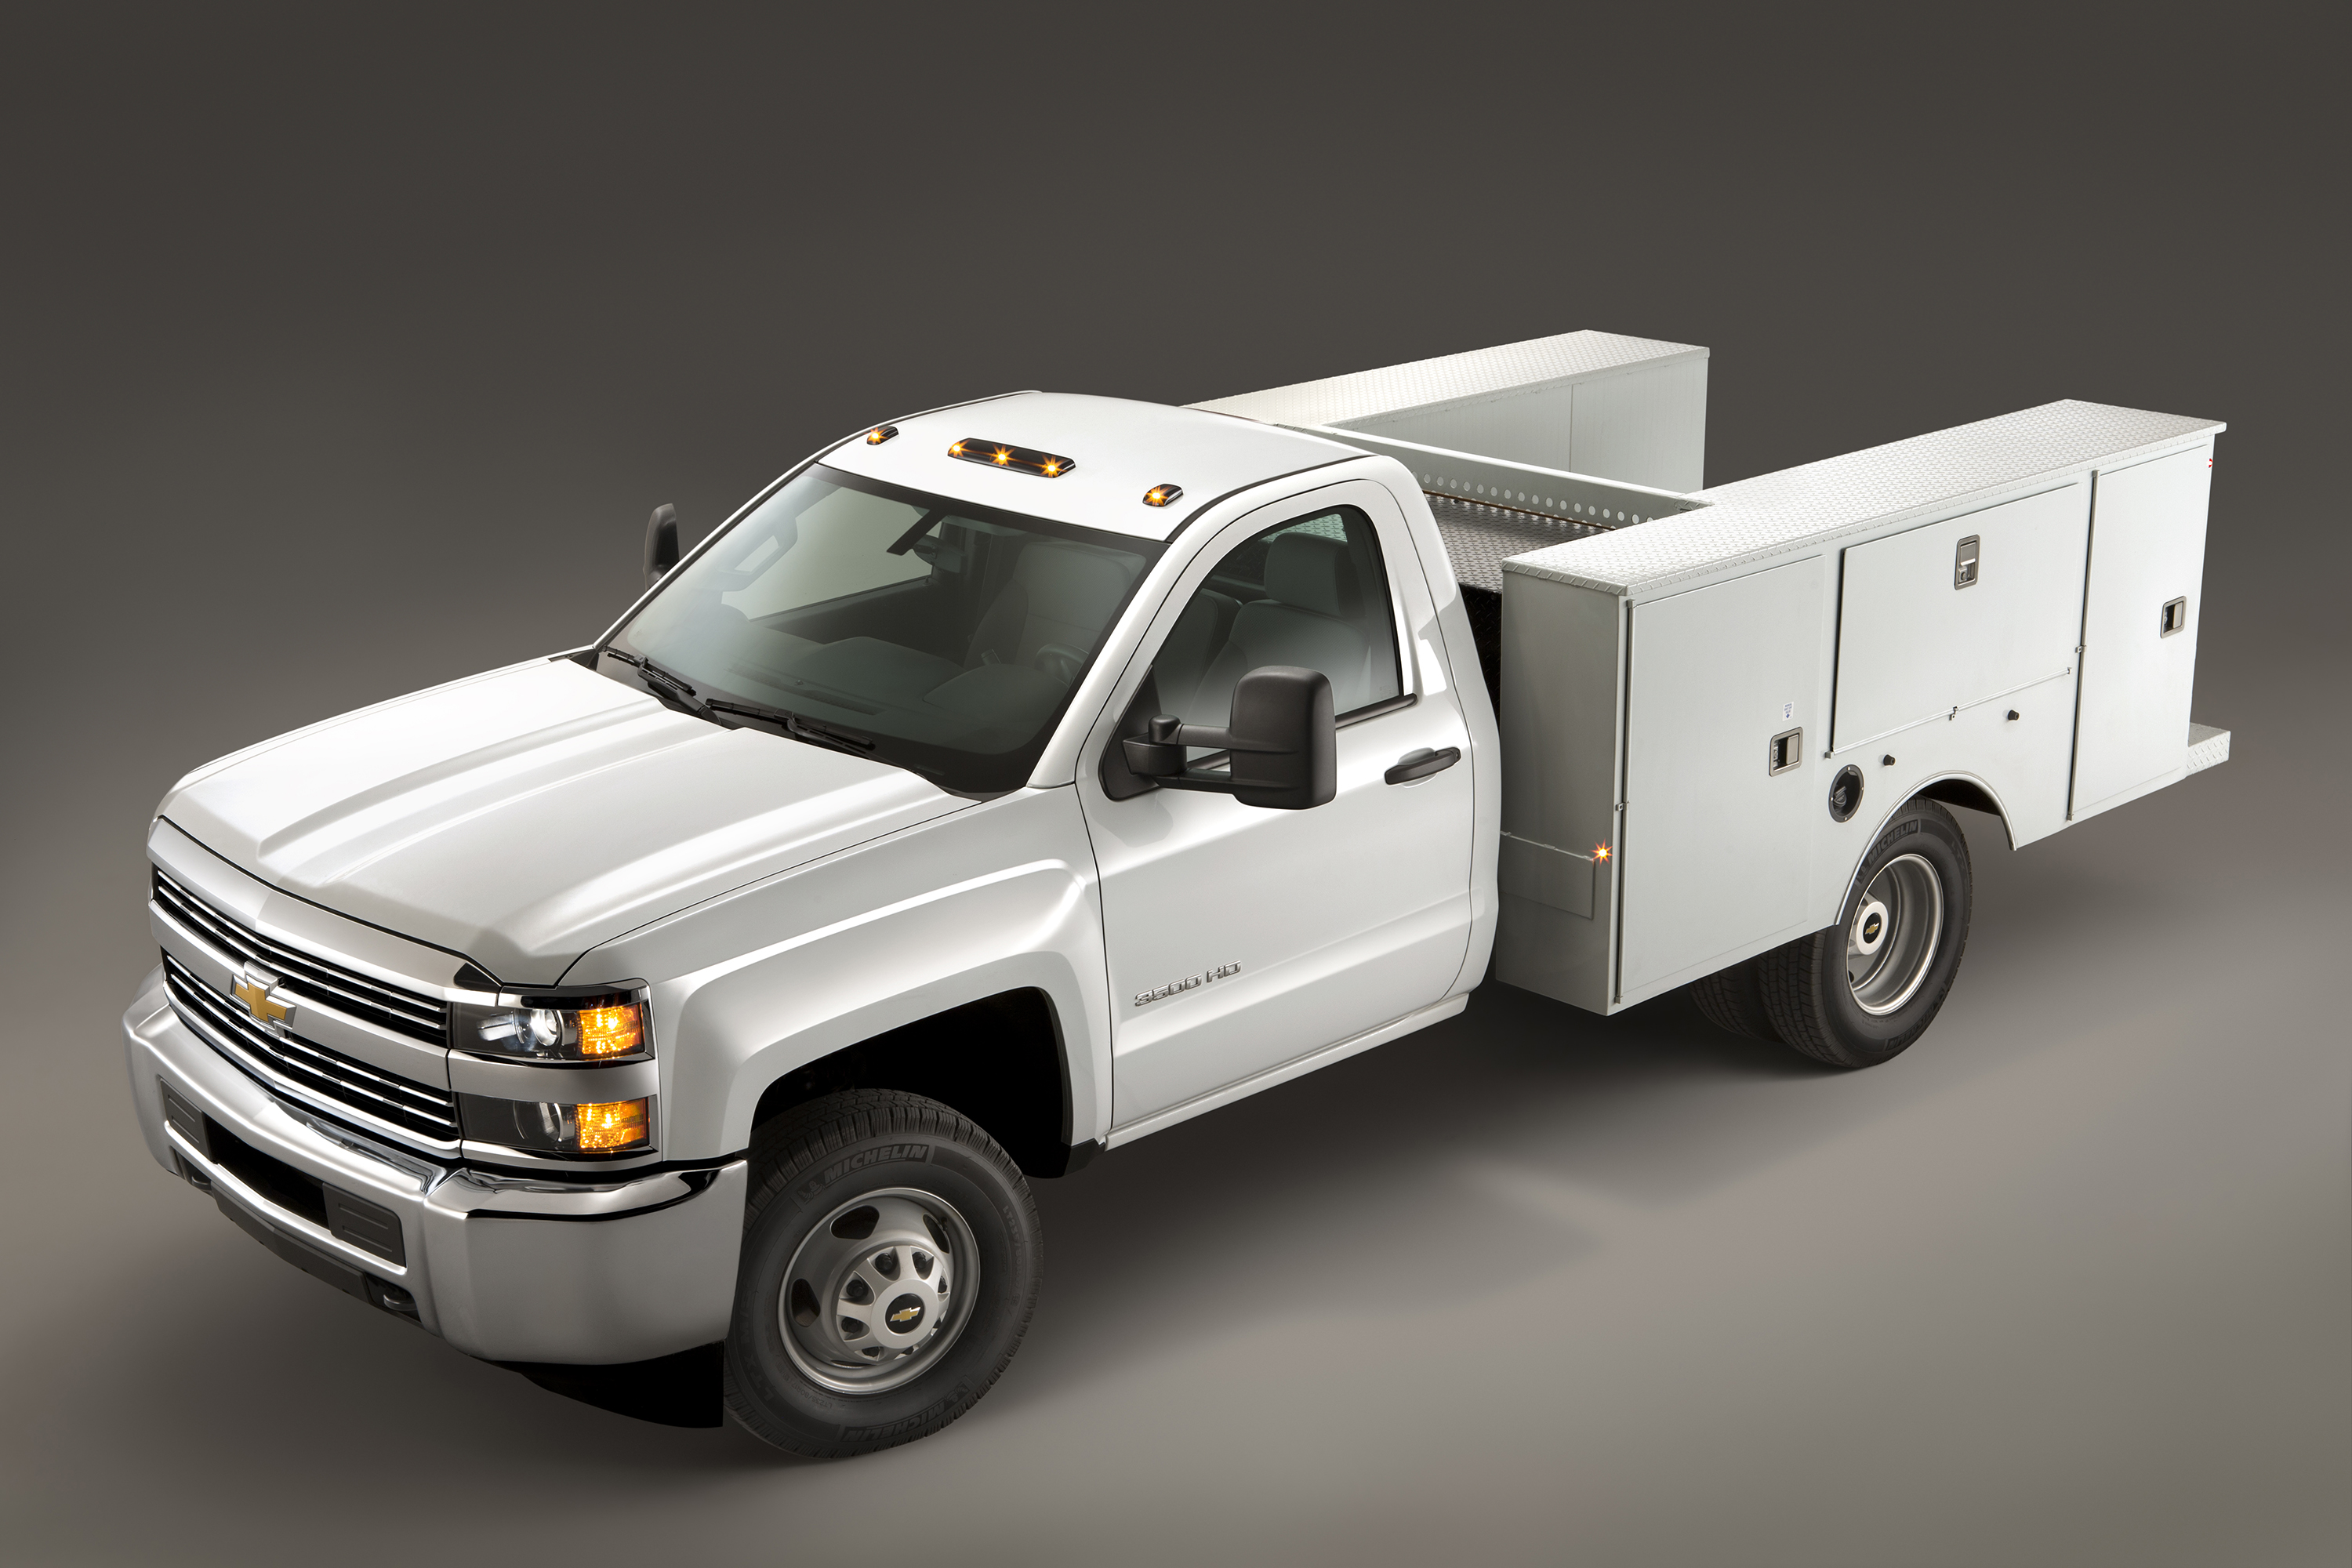 2016 Chevrolet Silverado 3500HD Chassis Cab Gets Bi-Fuel ...